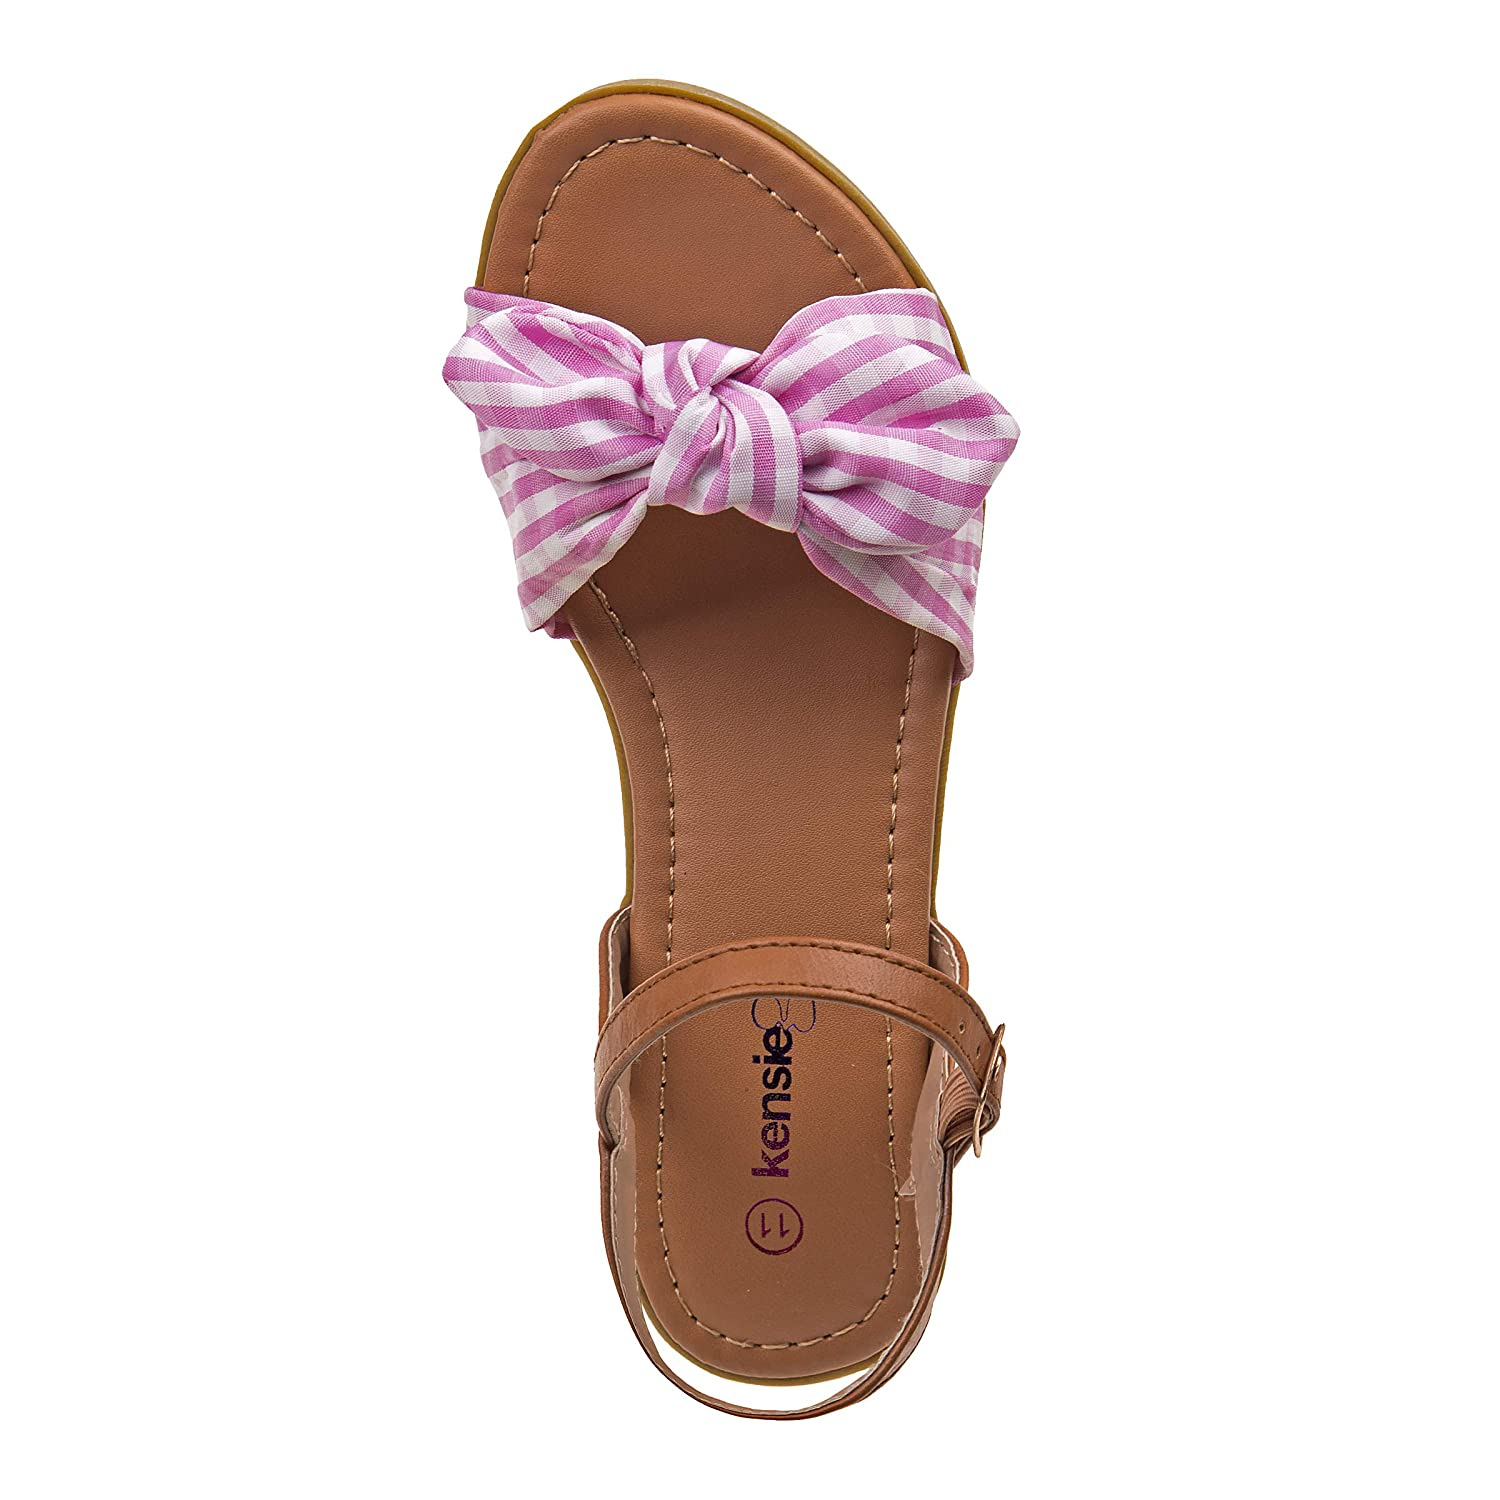 e84ea3ad0ce Kensie Girl Gingham Bow Sandals with Easy Elastic Buckle and Rugged Sole  (Little Kid/Big Kid)